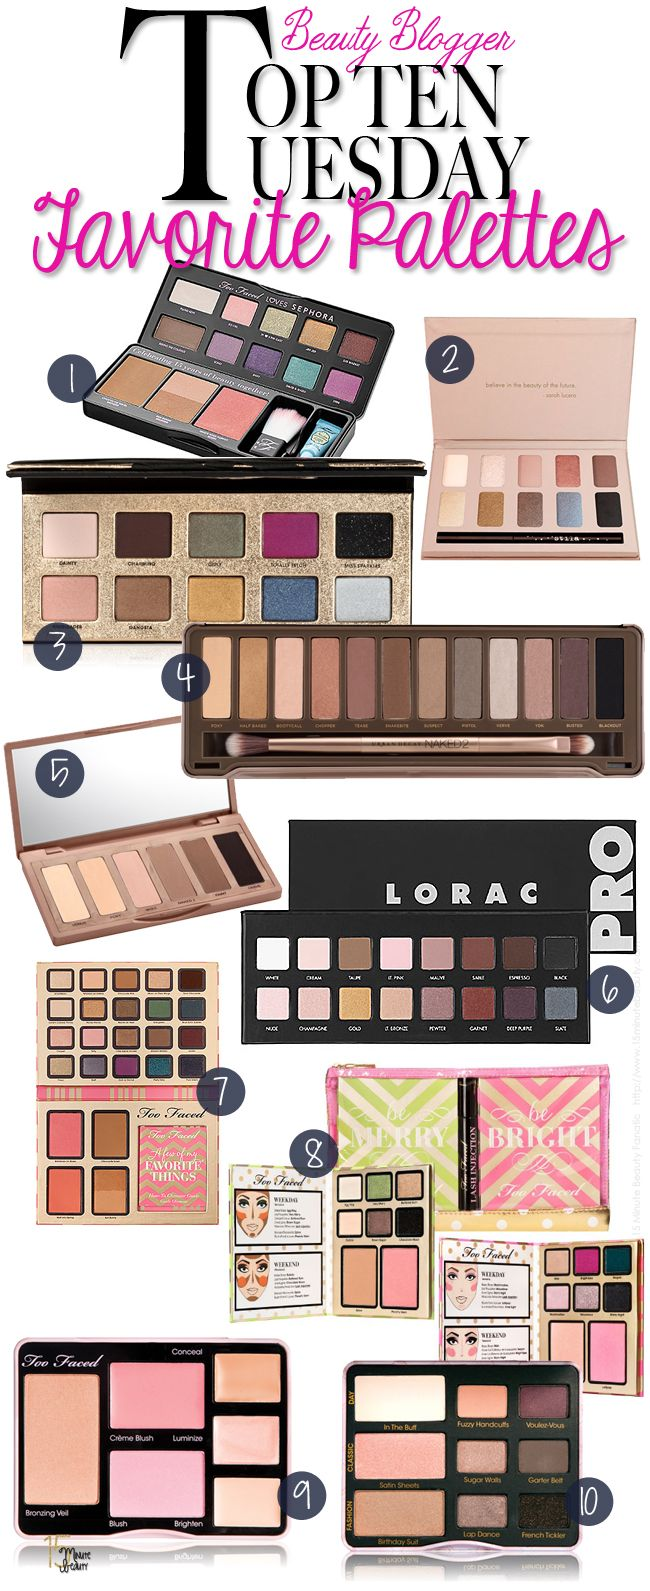 Top 10 Tuesday My Favorite Makeup Palettes 15 Minute Beauty Fanatic Best Makeup Palettes Makeup Palette Best Makeup Products